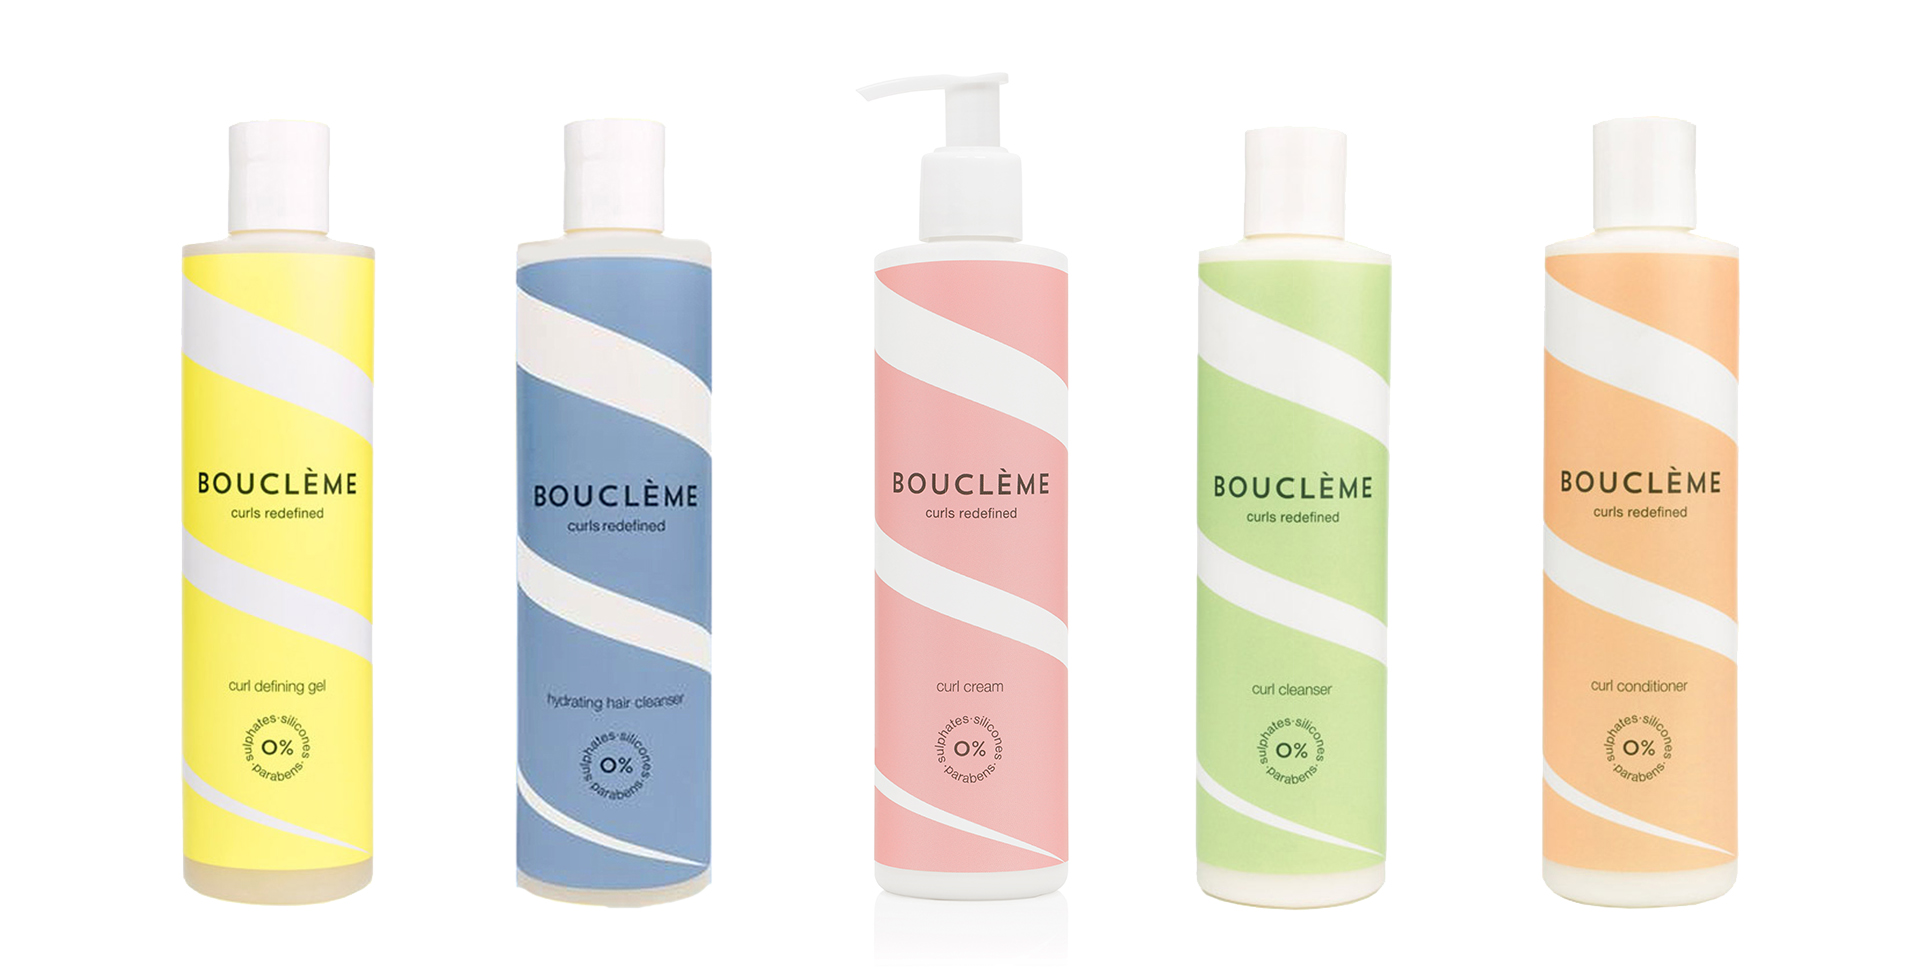 Boucleme Natural Haircare range is made for curly hair with all natural ingredients. Shop it instore at London organic beauty shop CONTENT and online with free worldwide delivery